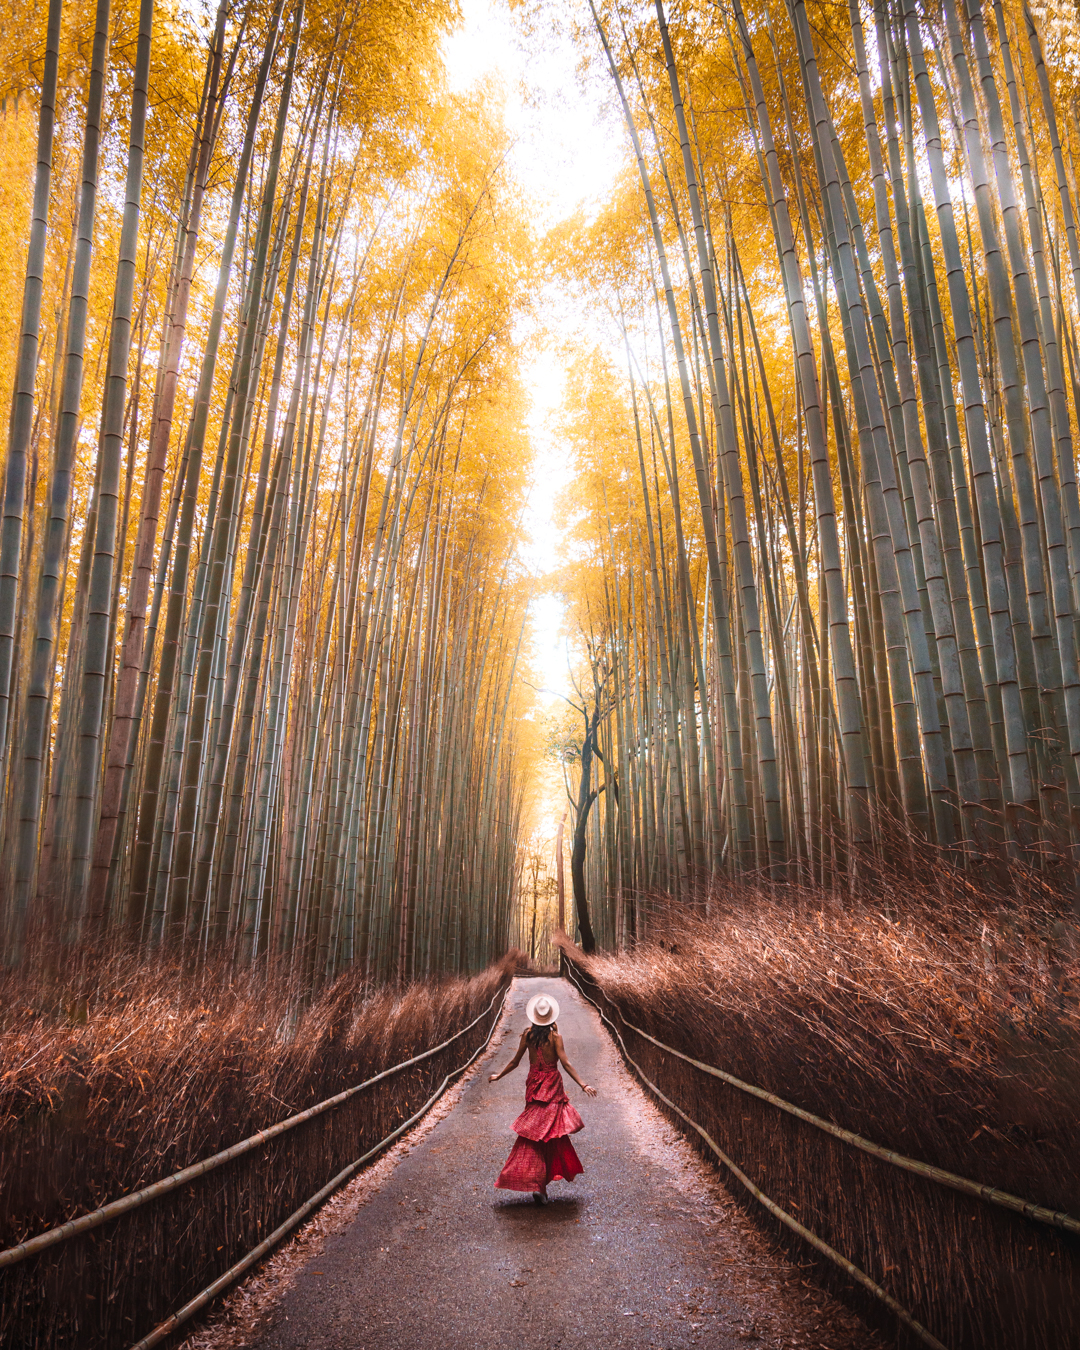 Girl in bamboo grove